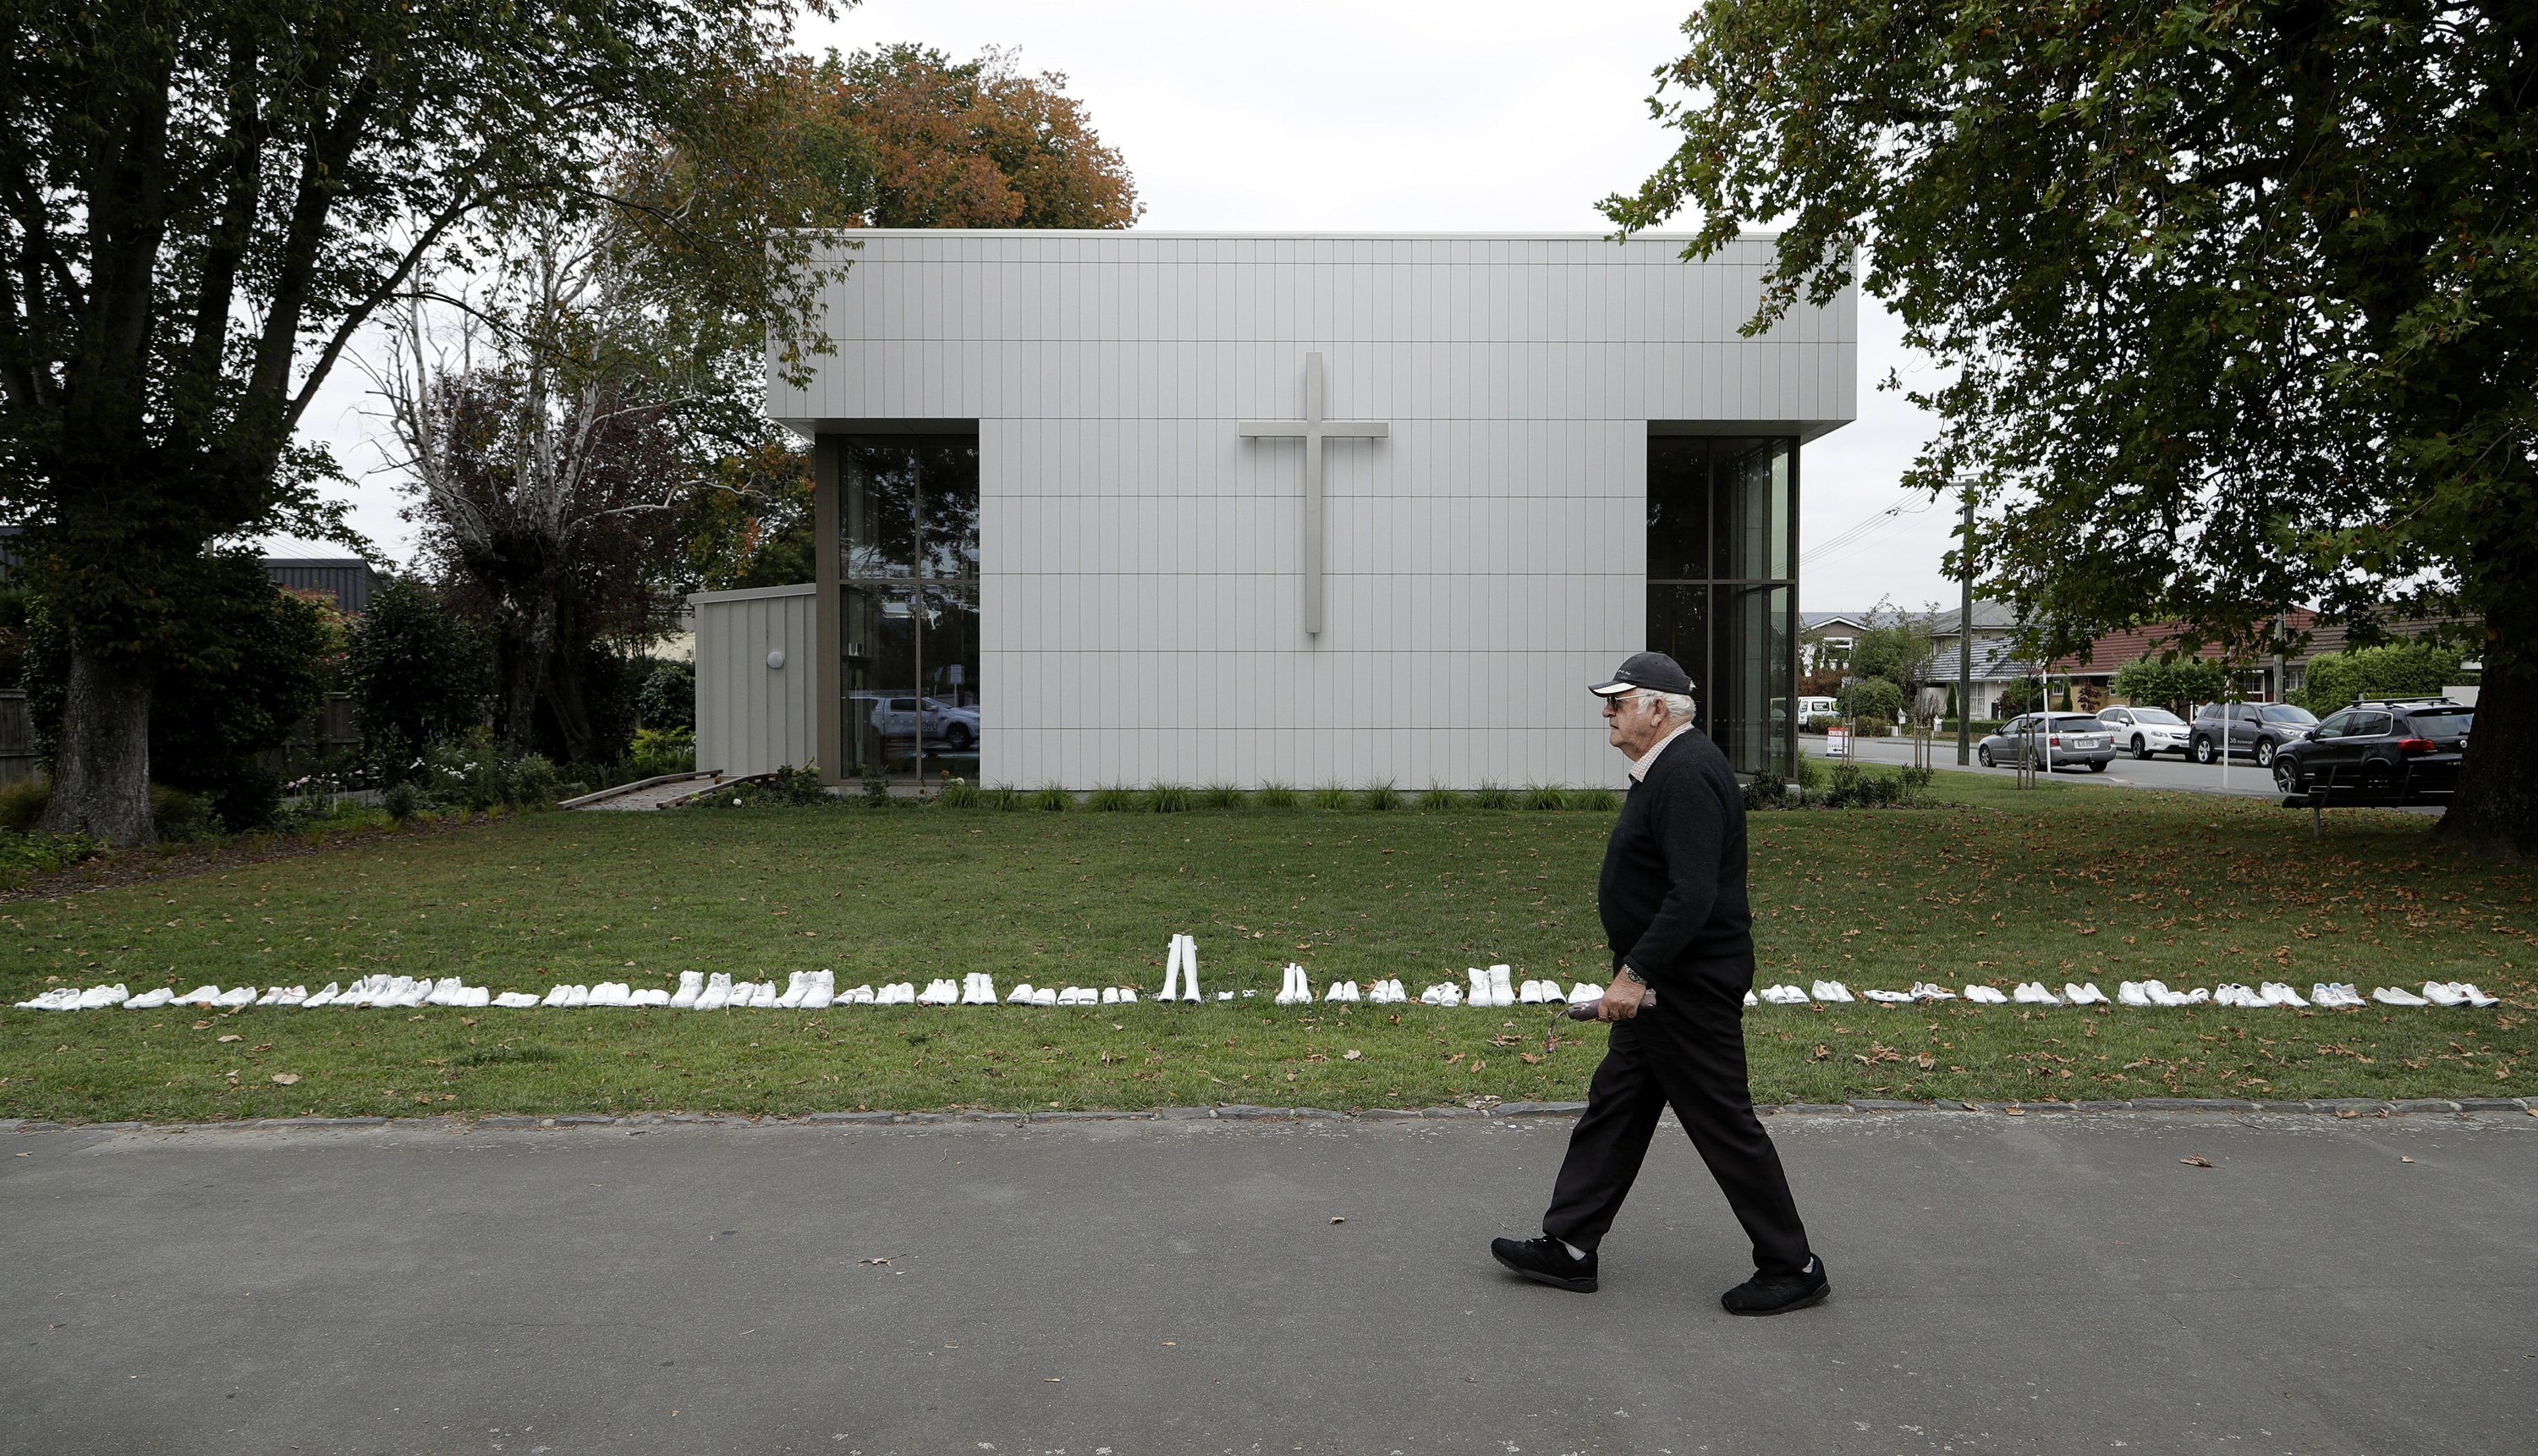 NZ leader vows to 'absolutely deny' mosque gunman a platform